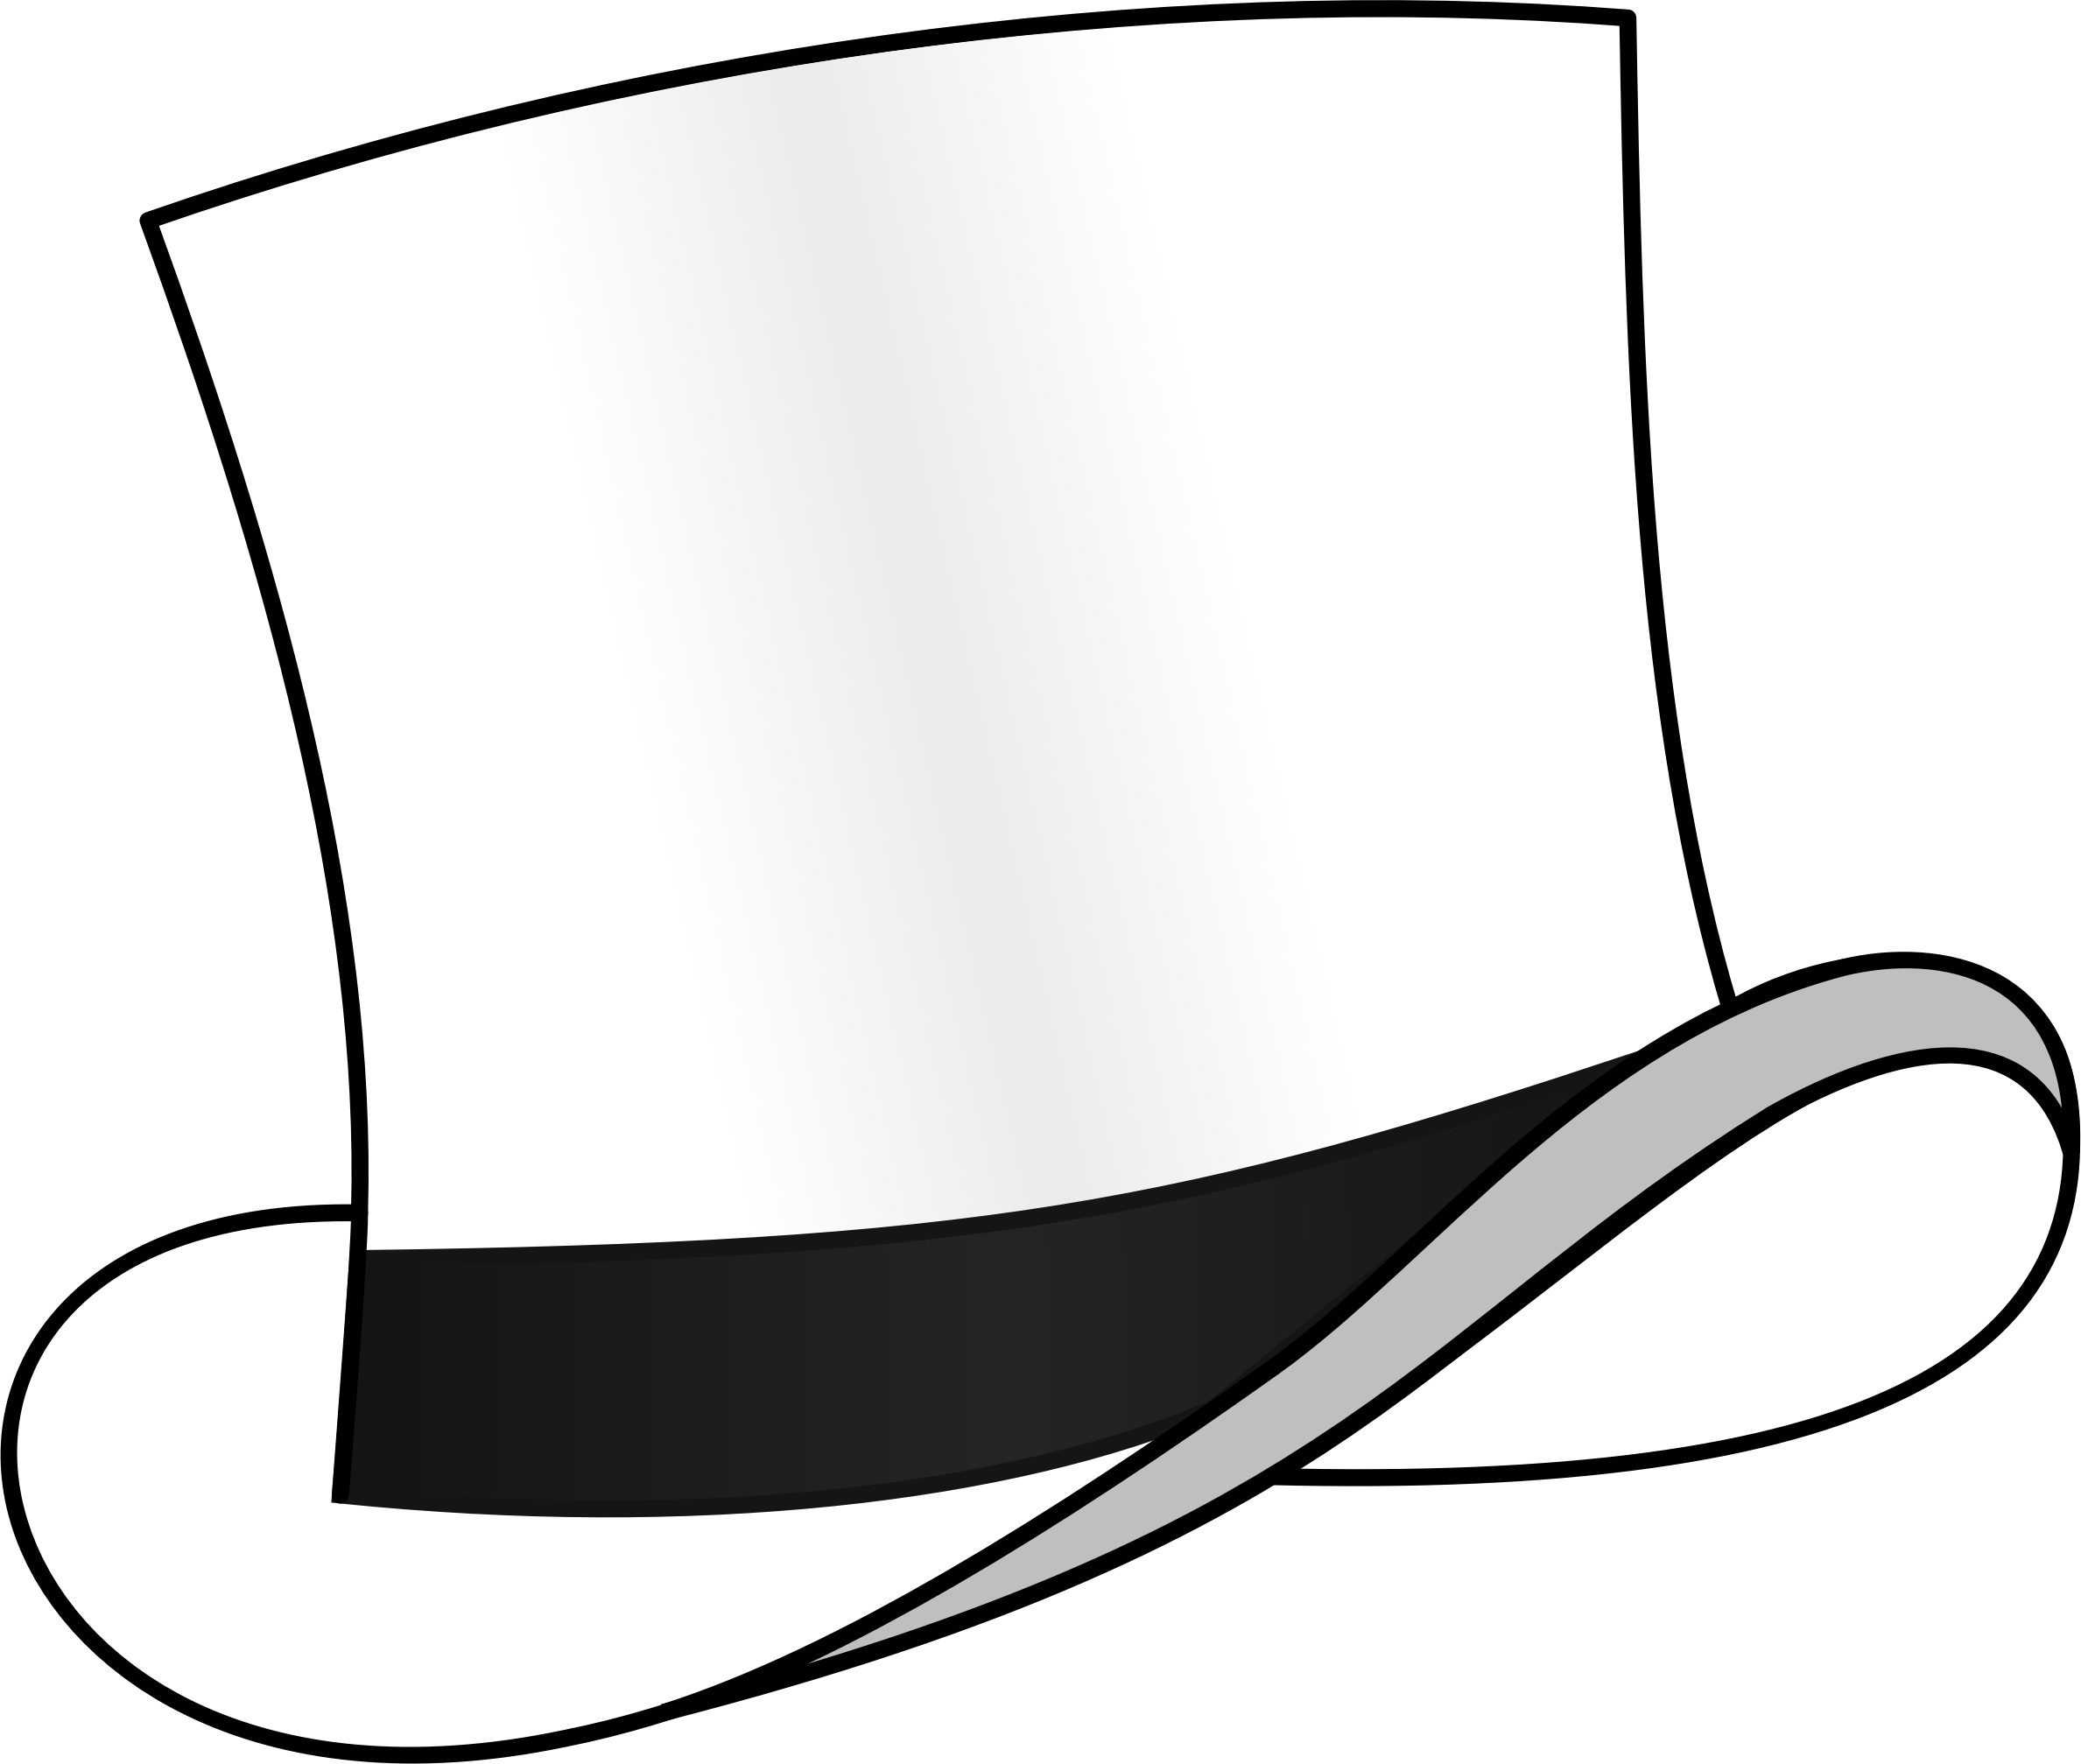 cane drawing top hat